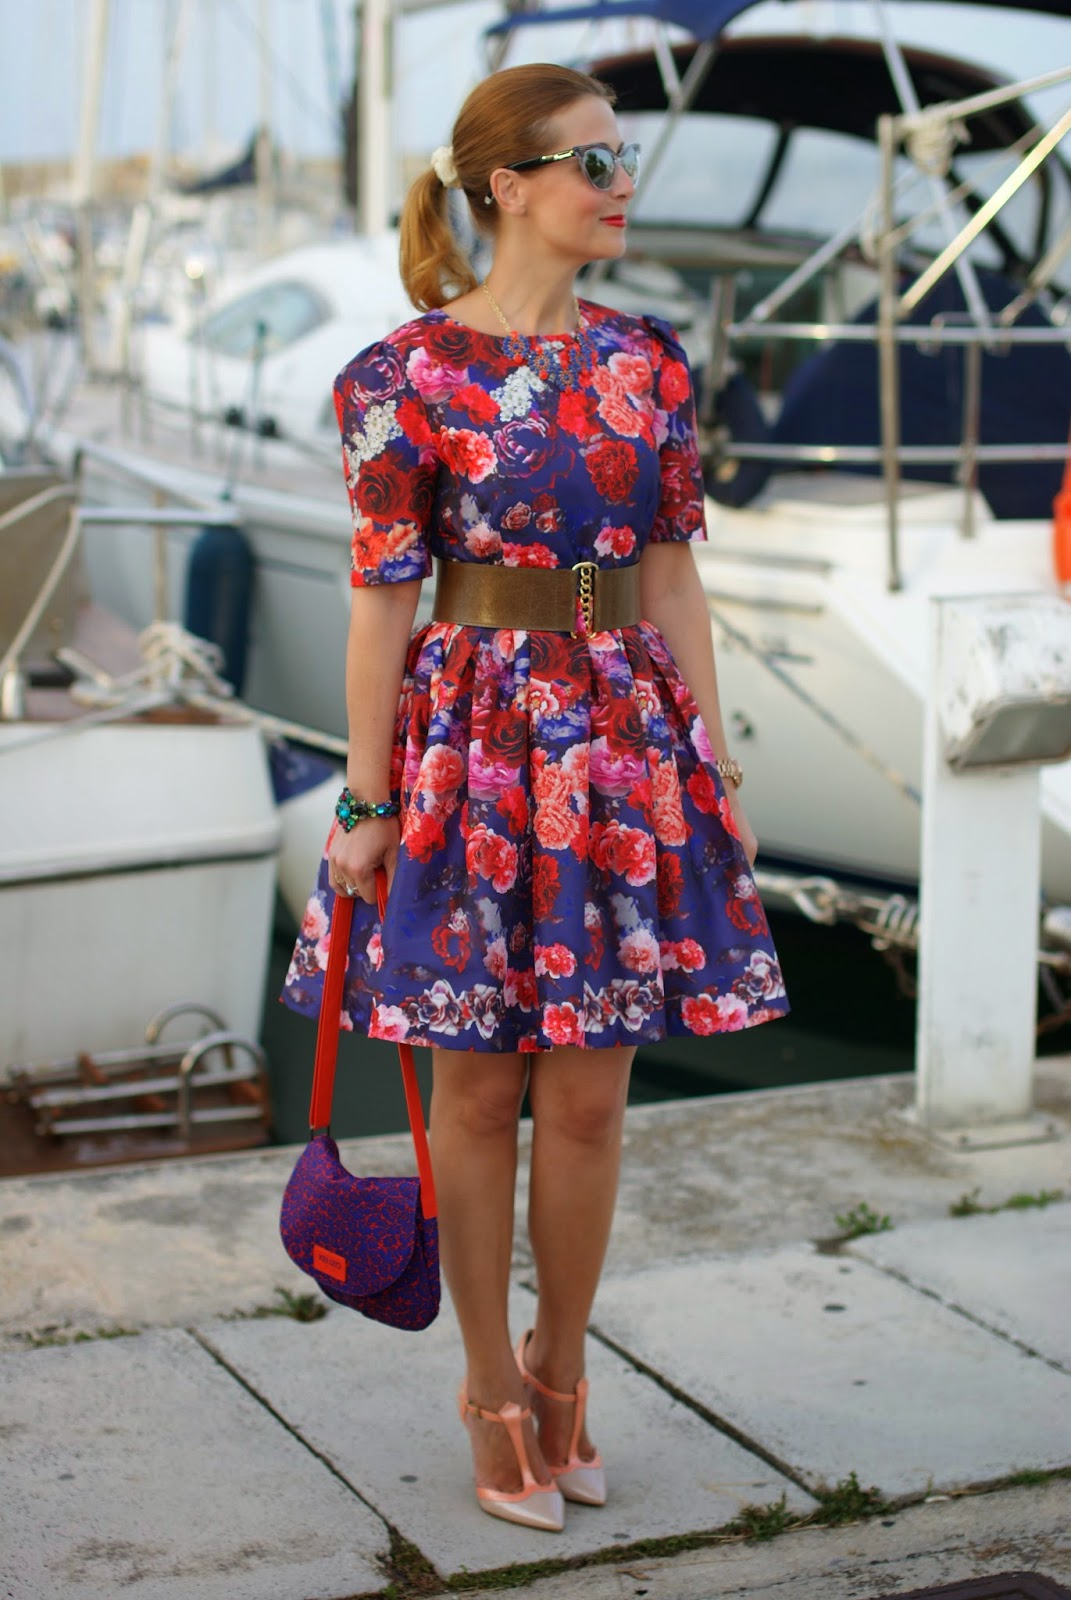 50s red roses dress, Kenzo bag, Sergio Levantesi shoes, Fashion and Cookies, fashion blogger